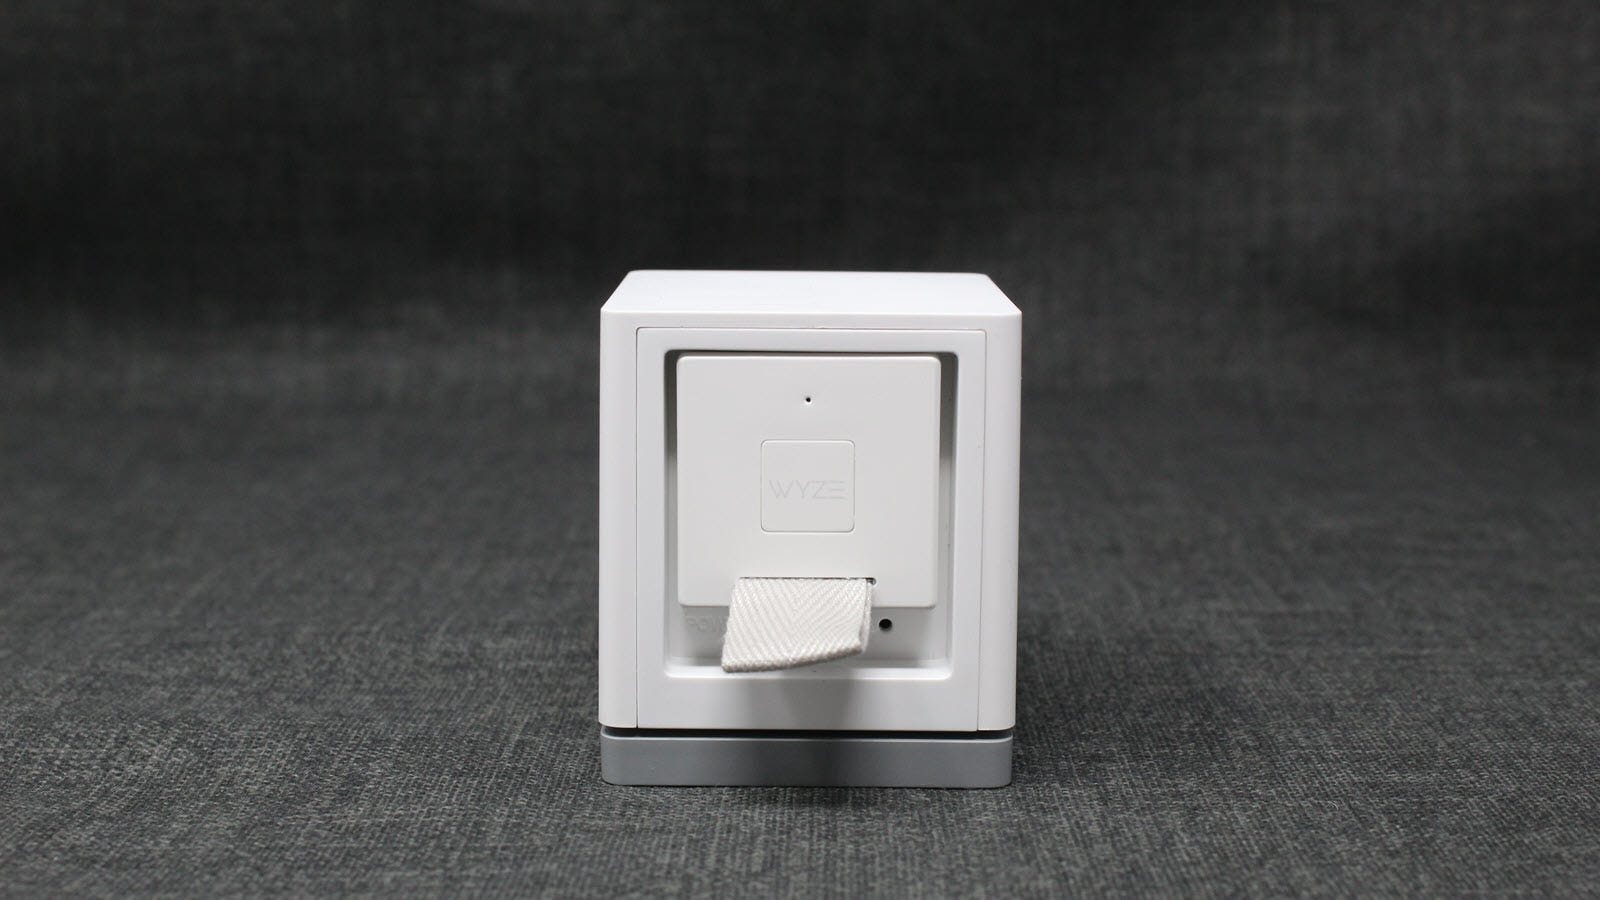 Wyze Cam with a bridge plugged into a back.